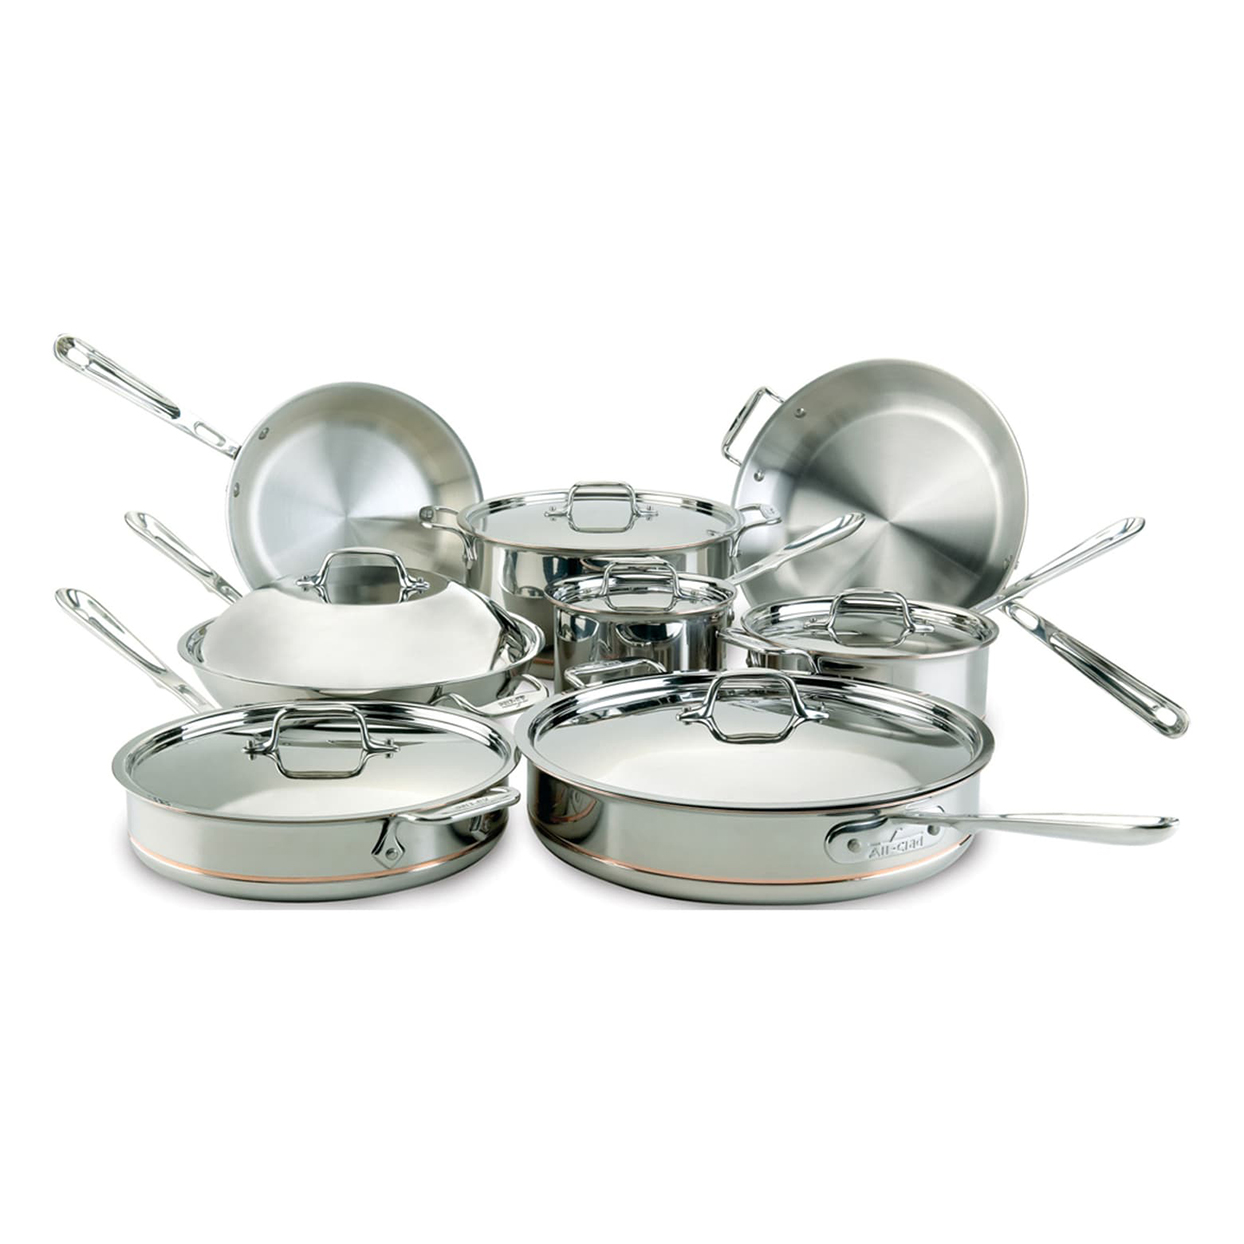 14-Piece Copper Core Stainless Steel Set